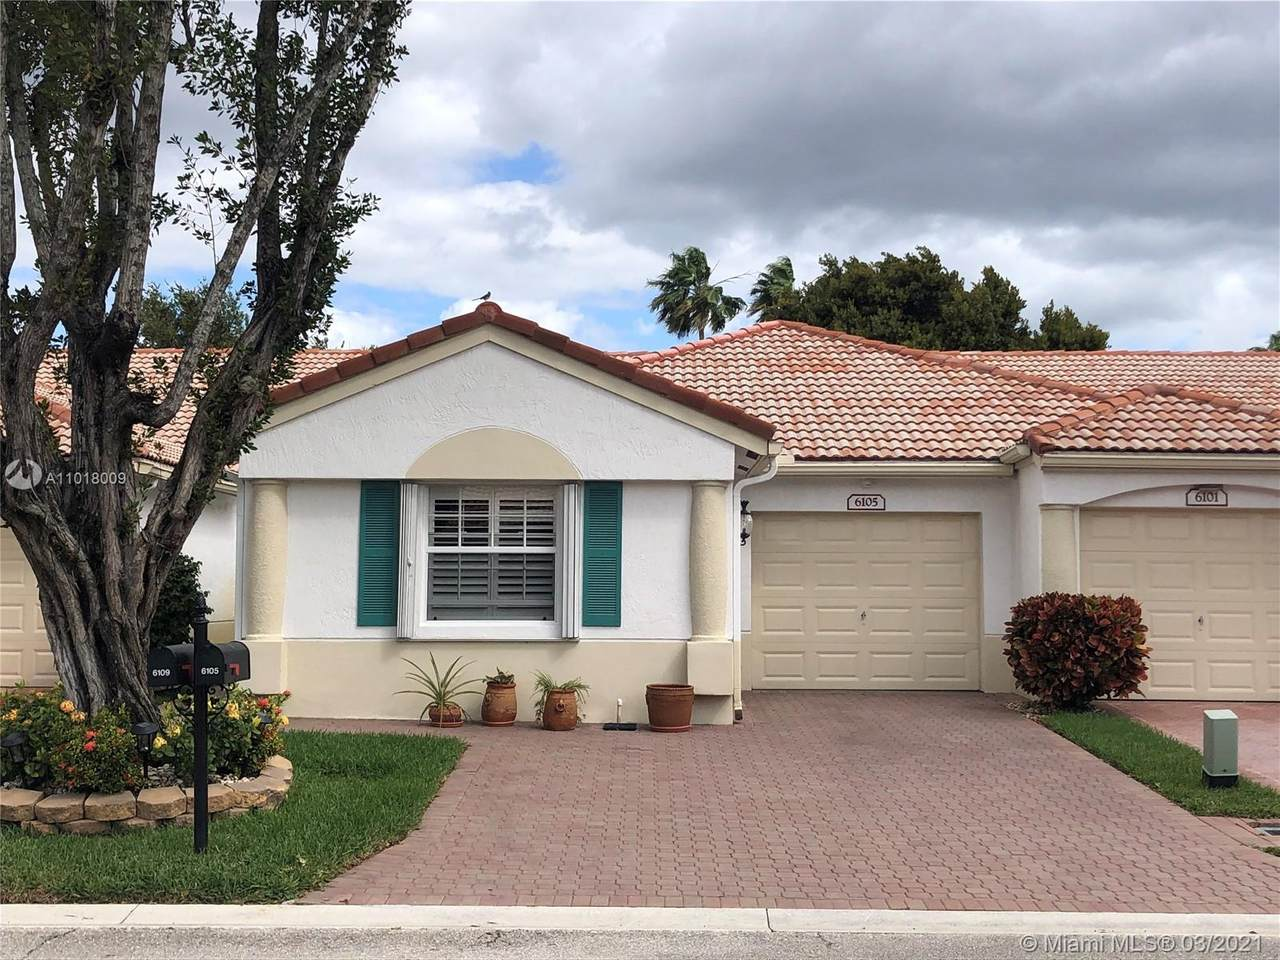 6105 Heliconia Rd - Photo 1